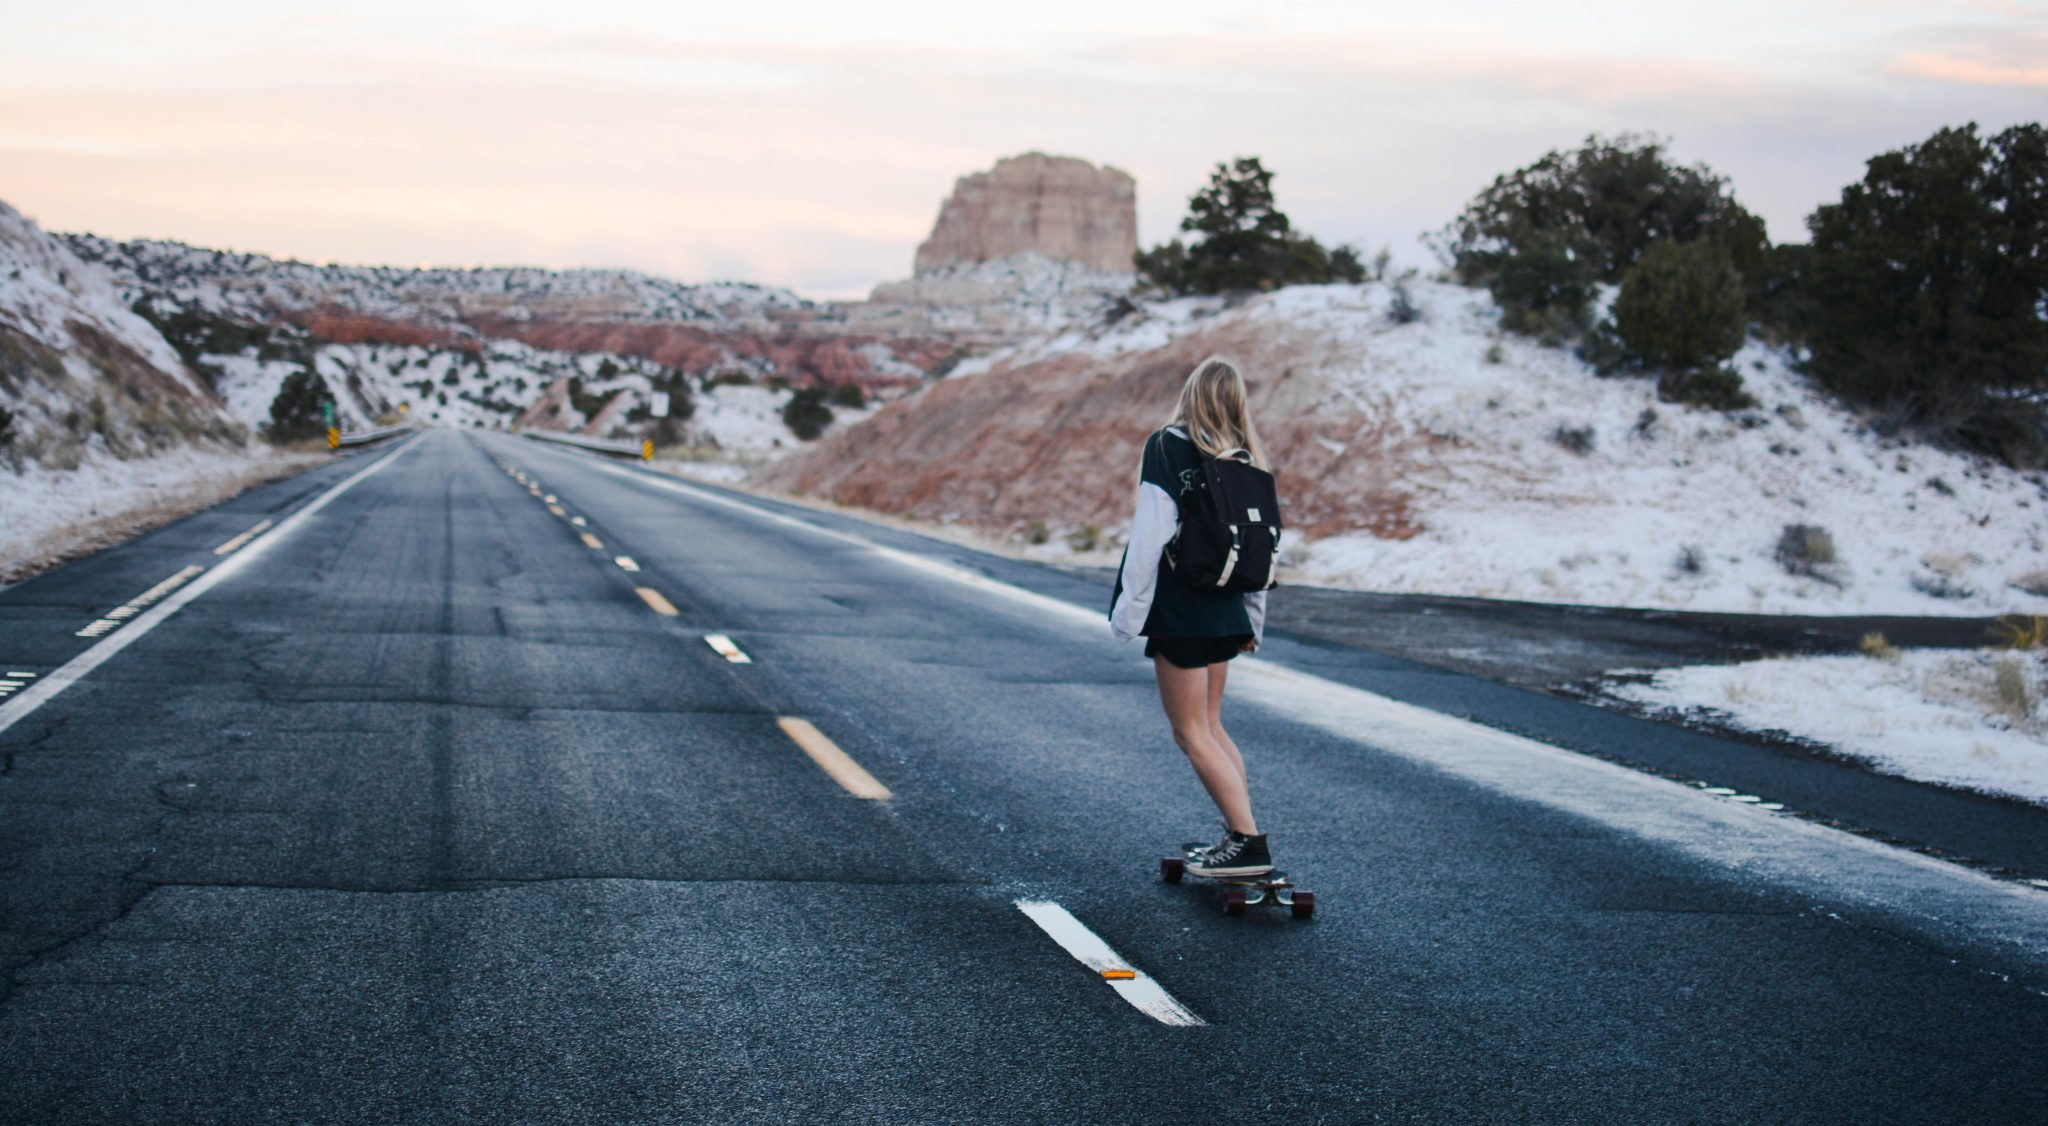 Woman skateboaring down road